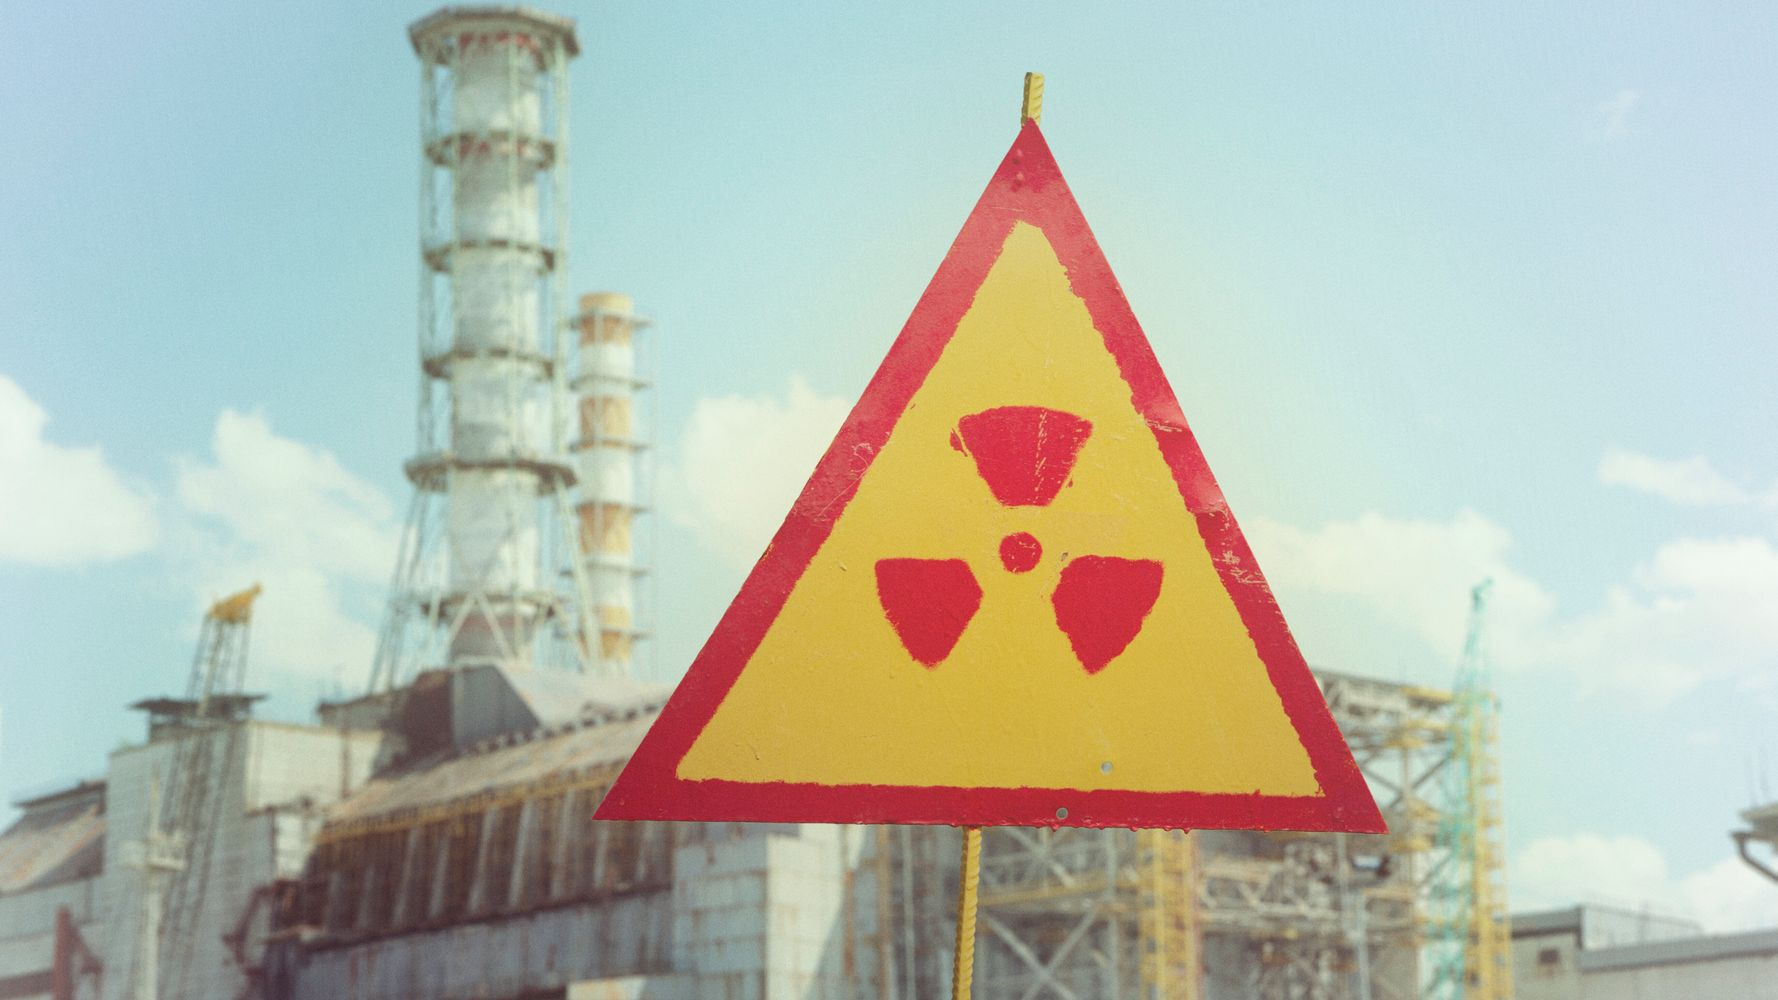 Chernobyl-Themed Escaped Room Launching In London Slammed As 'Very Bad Taste'